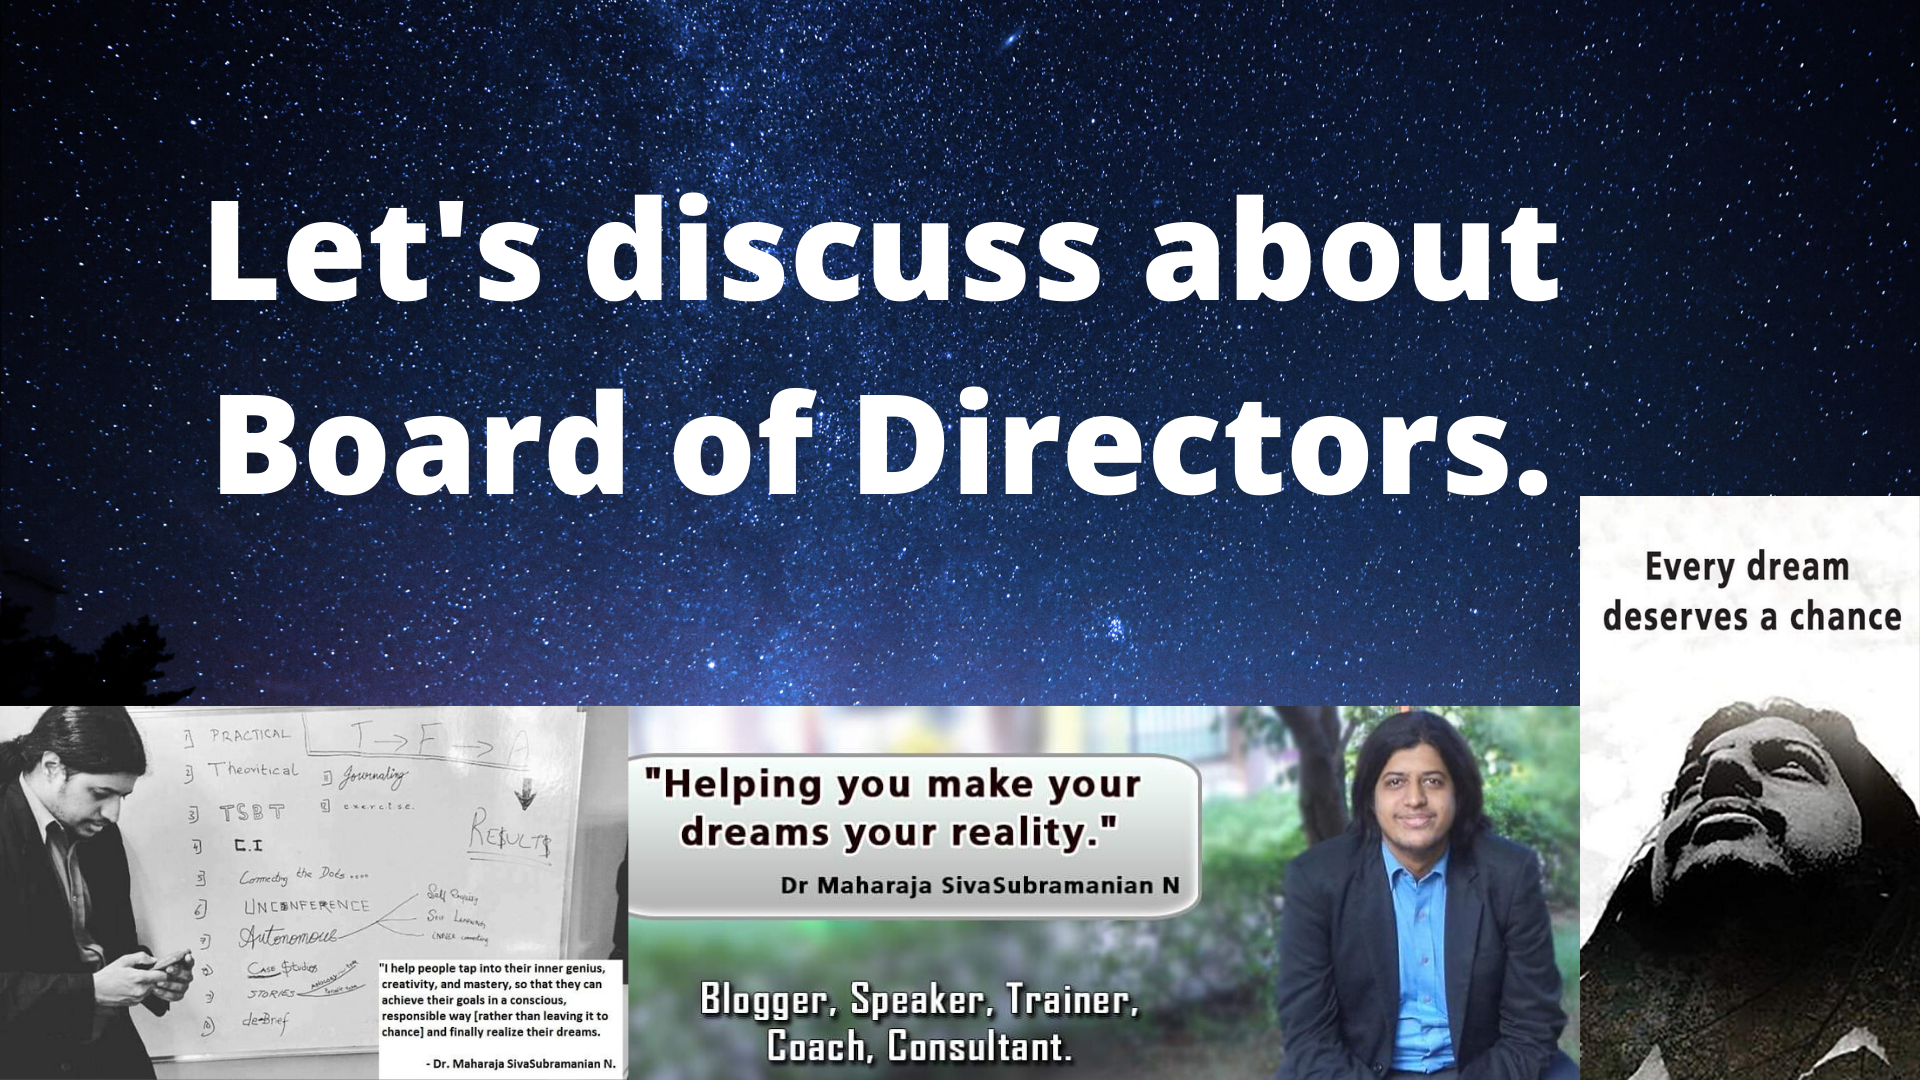 Let's discuss about Board of Directors.